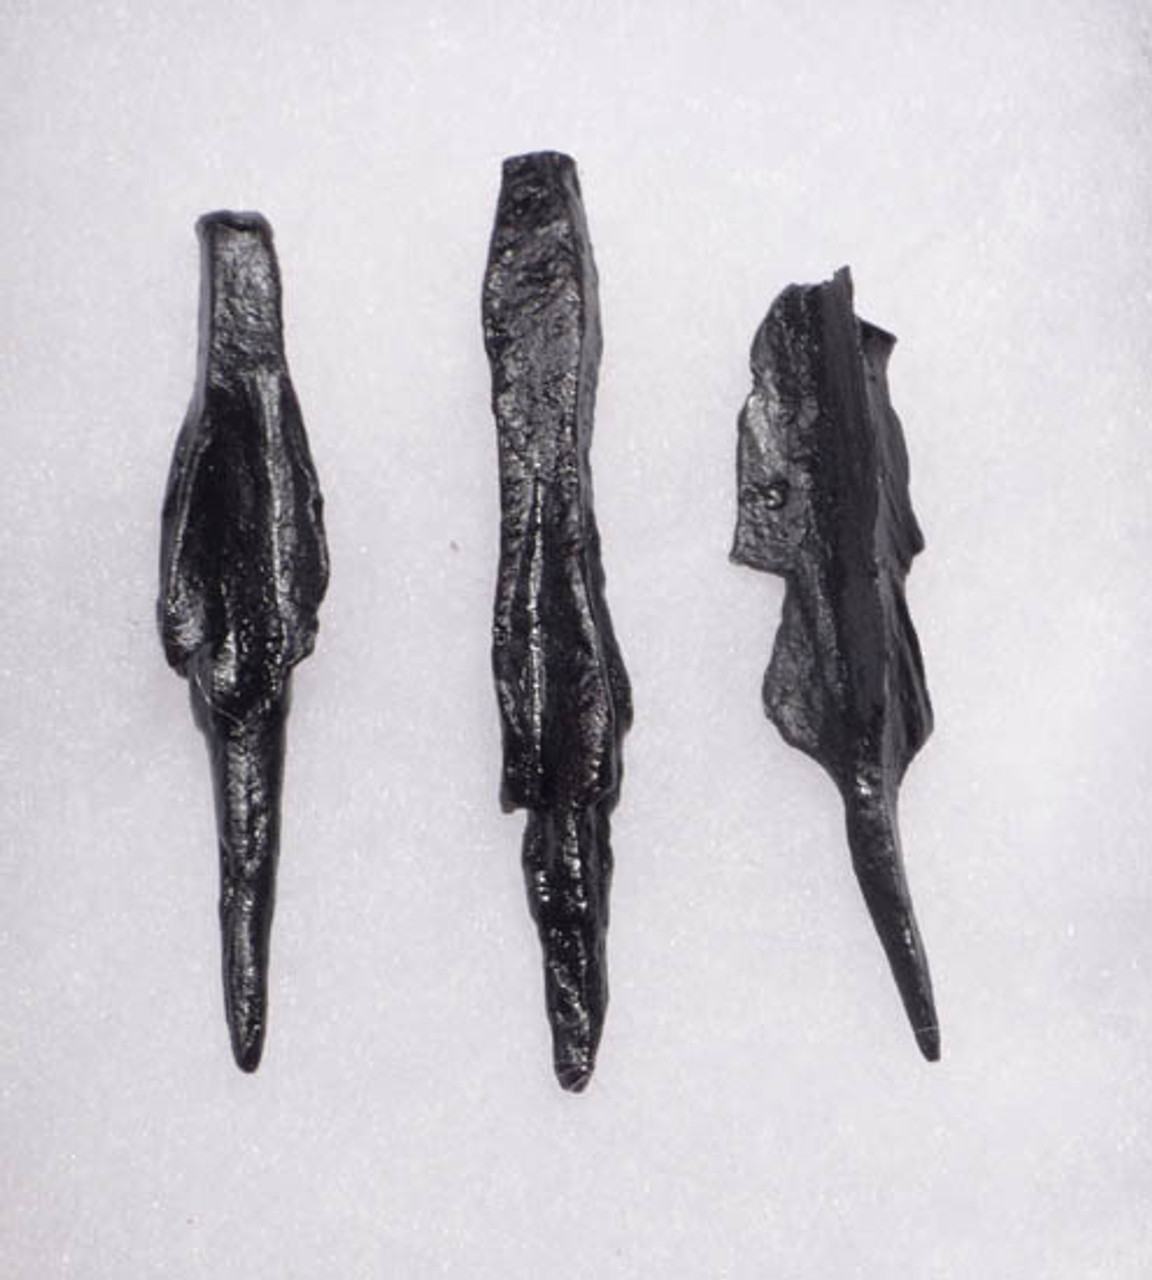 NE106 - SET OF 3 INTACT IRON ARMOR-PIERCING PROJECTILE POINT ARROWHEADS FROM THE EURASIAN STEPPE NOMAD TRIBES